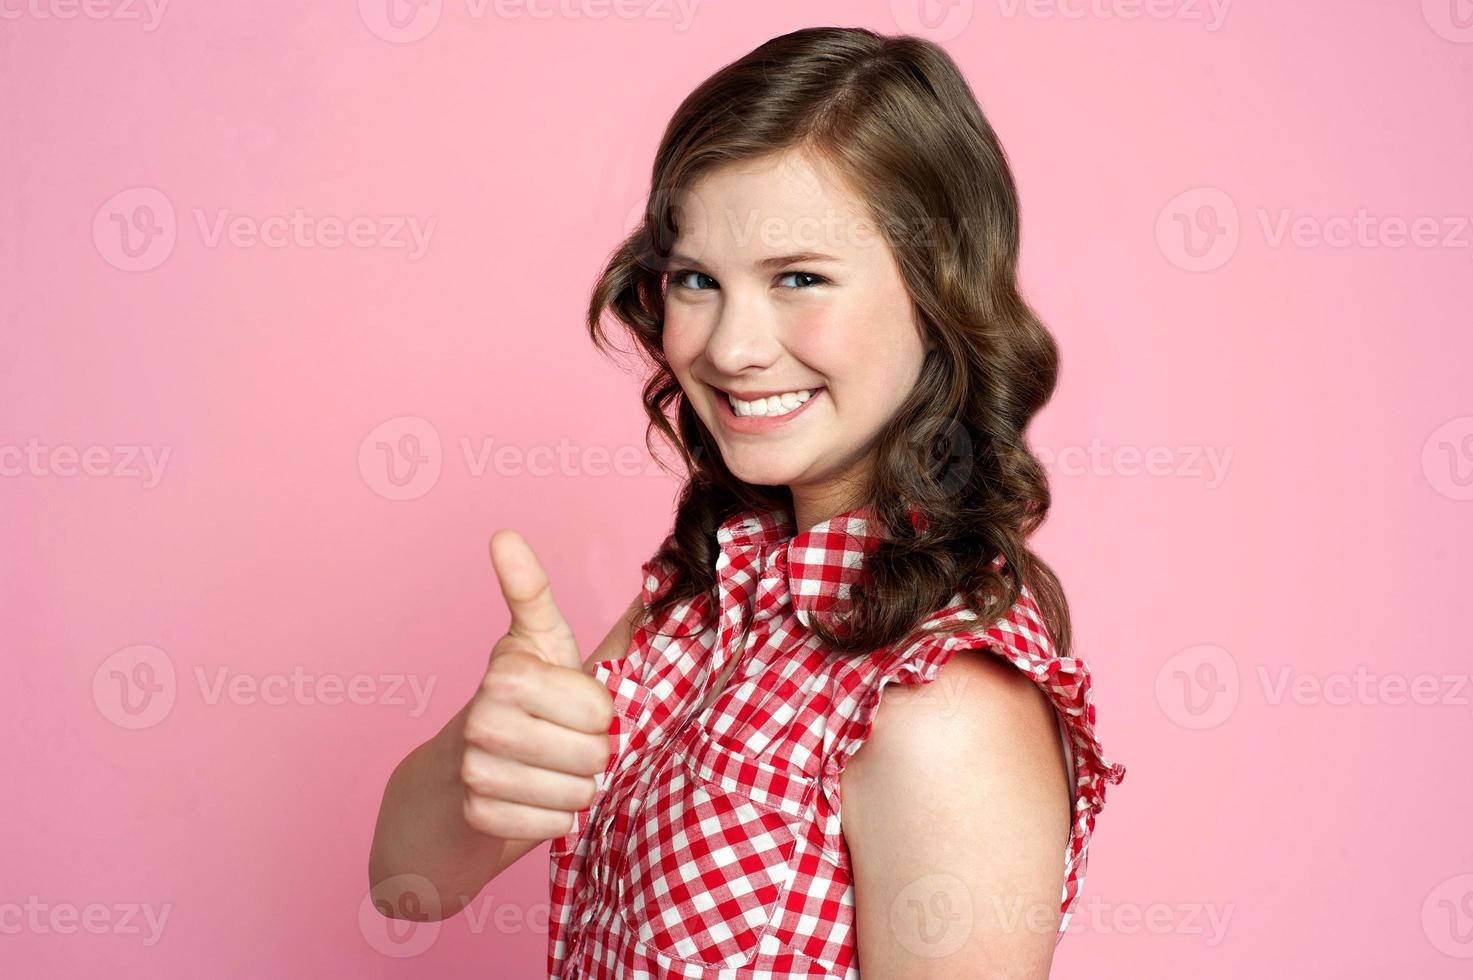 Beautiful smiling girl with ok gesture photo